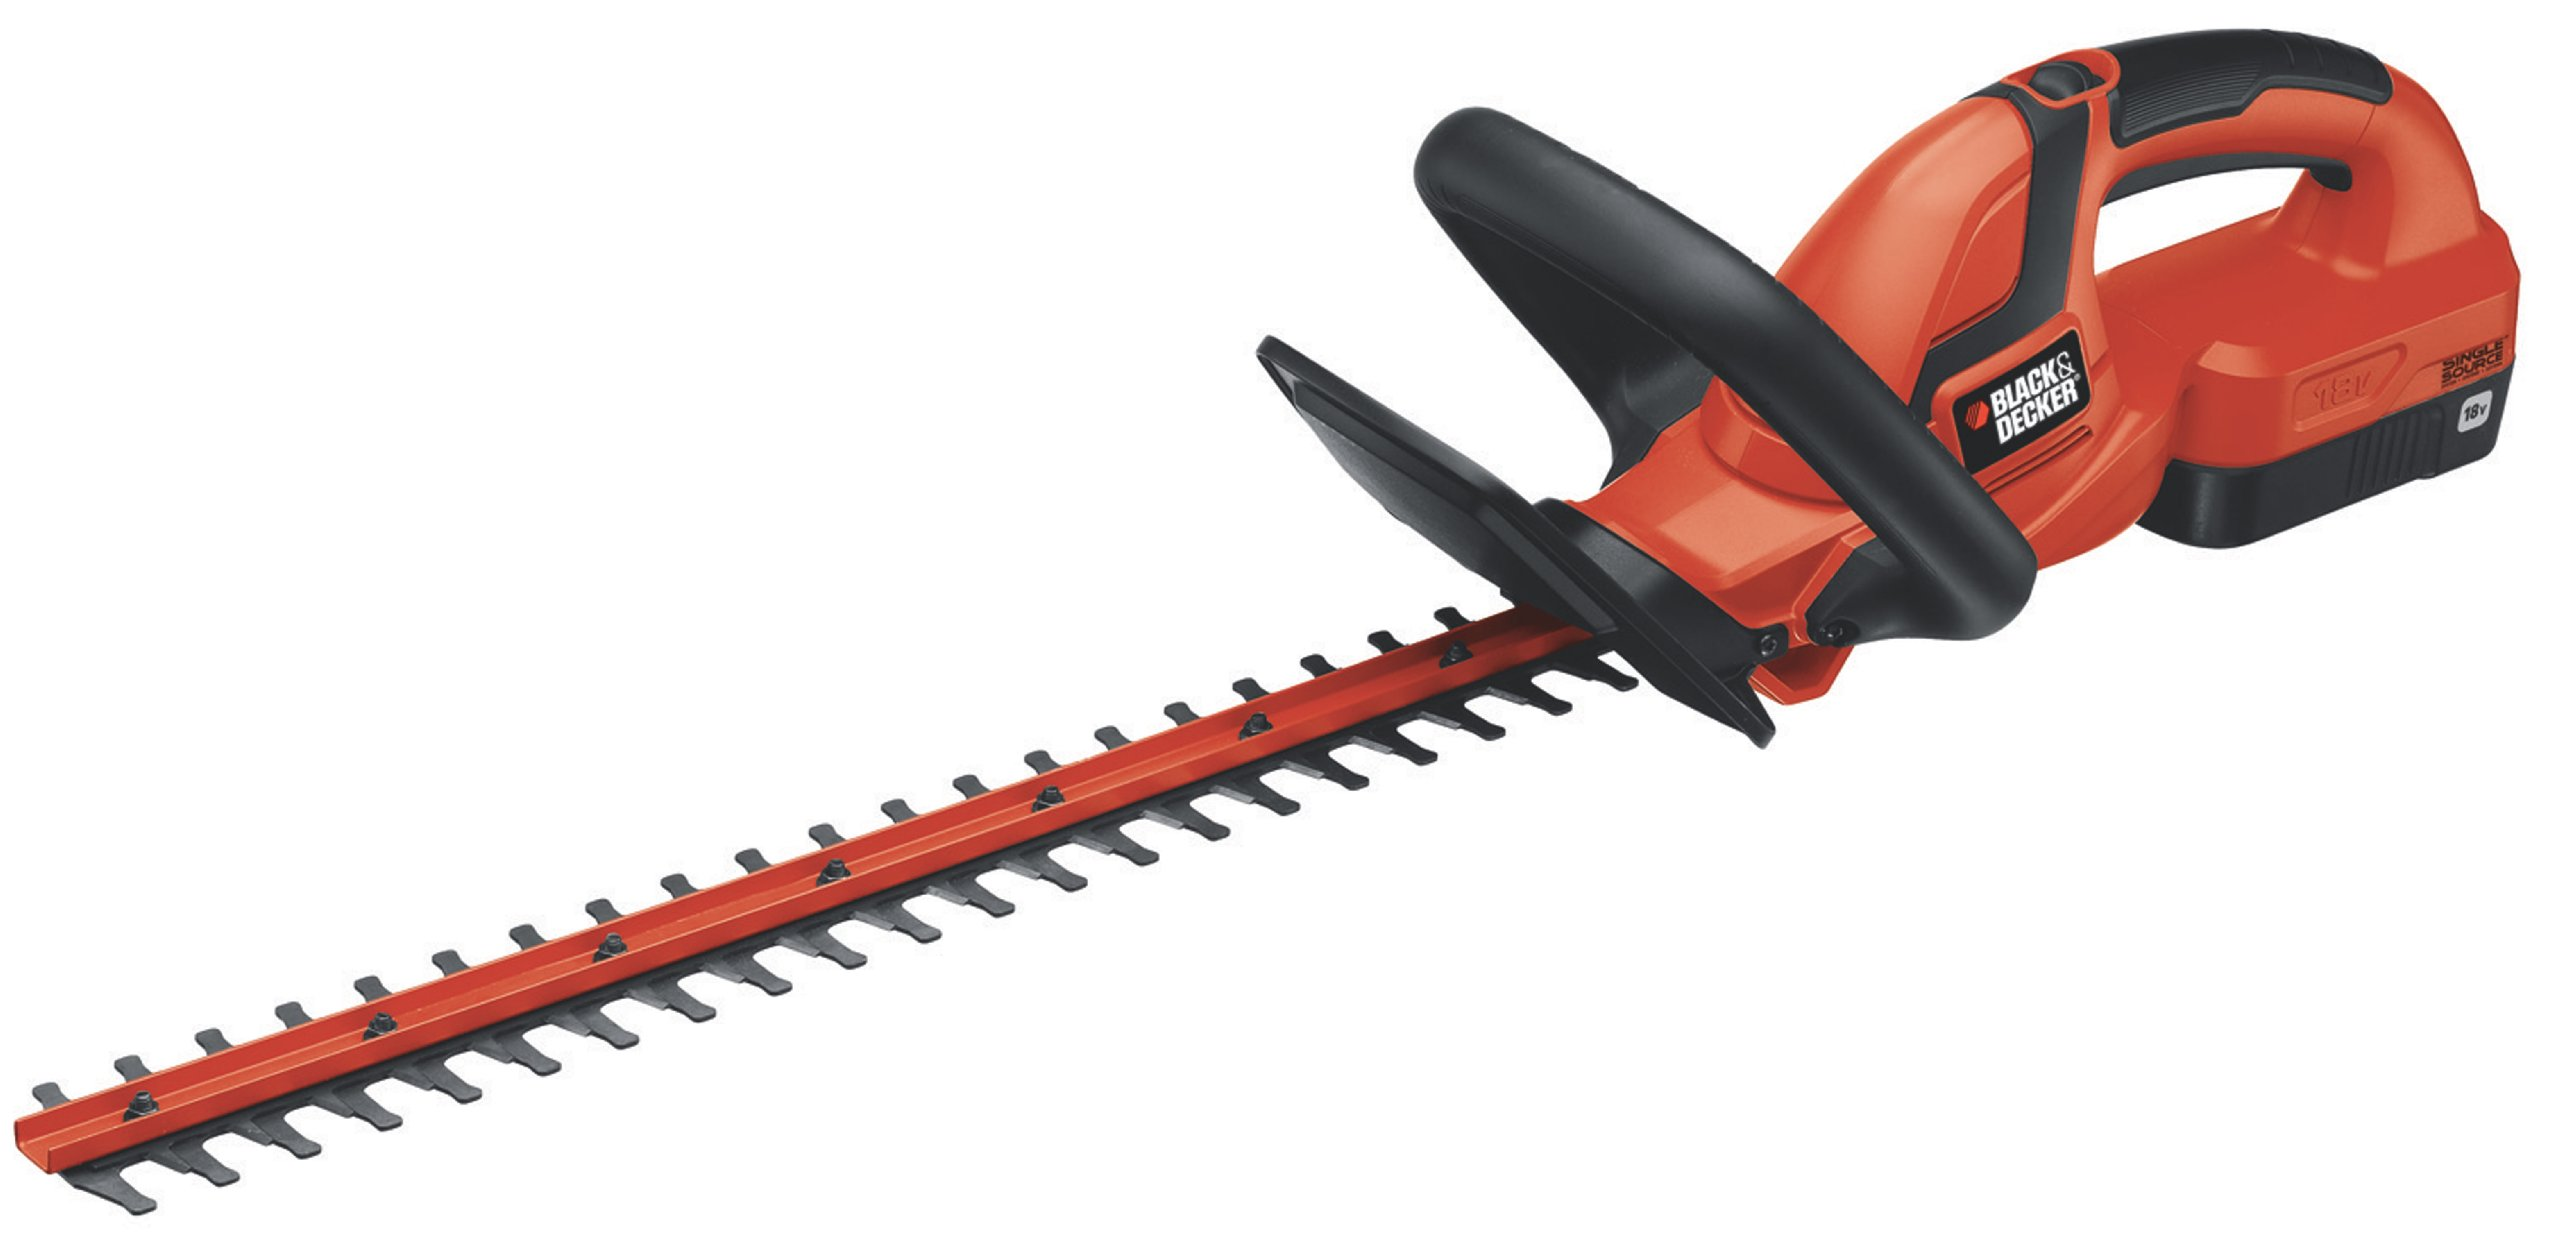 Black and decker hedge trimmer stopped working - Fixya